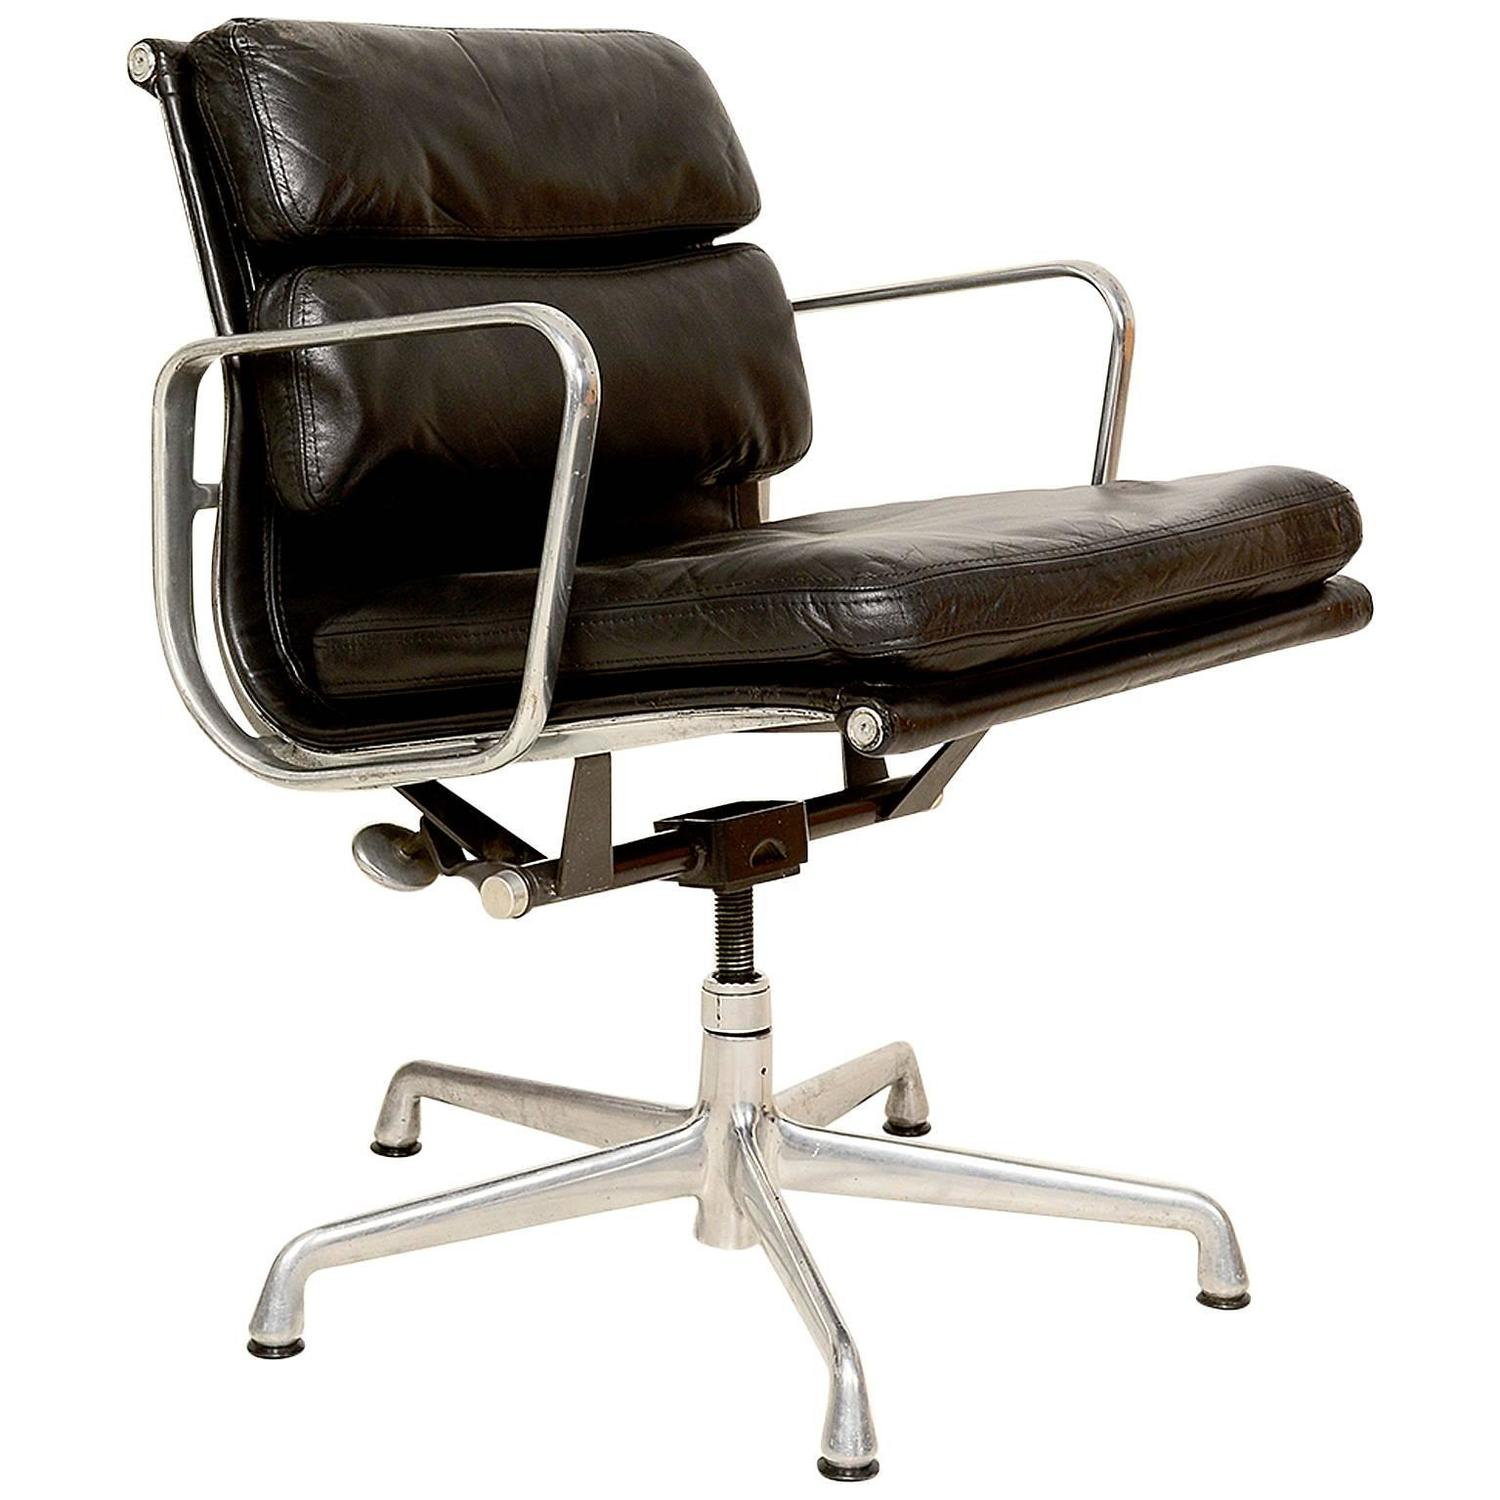 vintage herman miller eames soft pad aluminum group chair for sale at 1stdibs. Black Bedroom Furniture Sets. Home Design Ideas